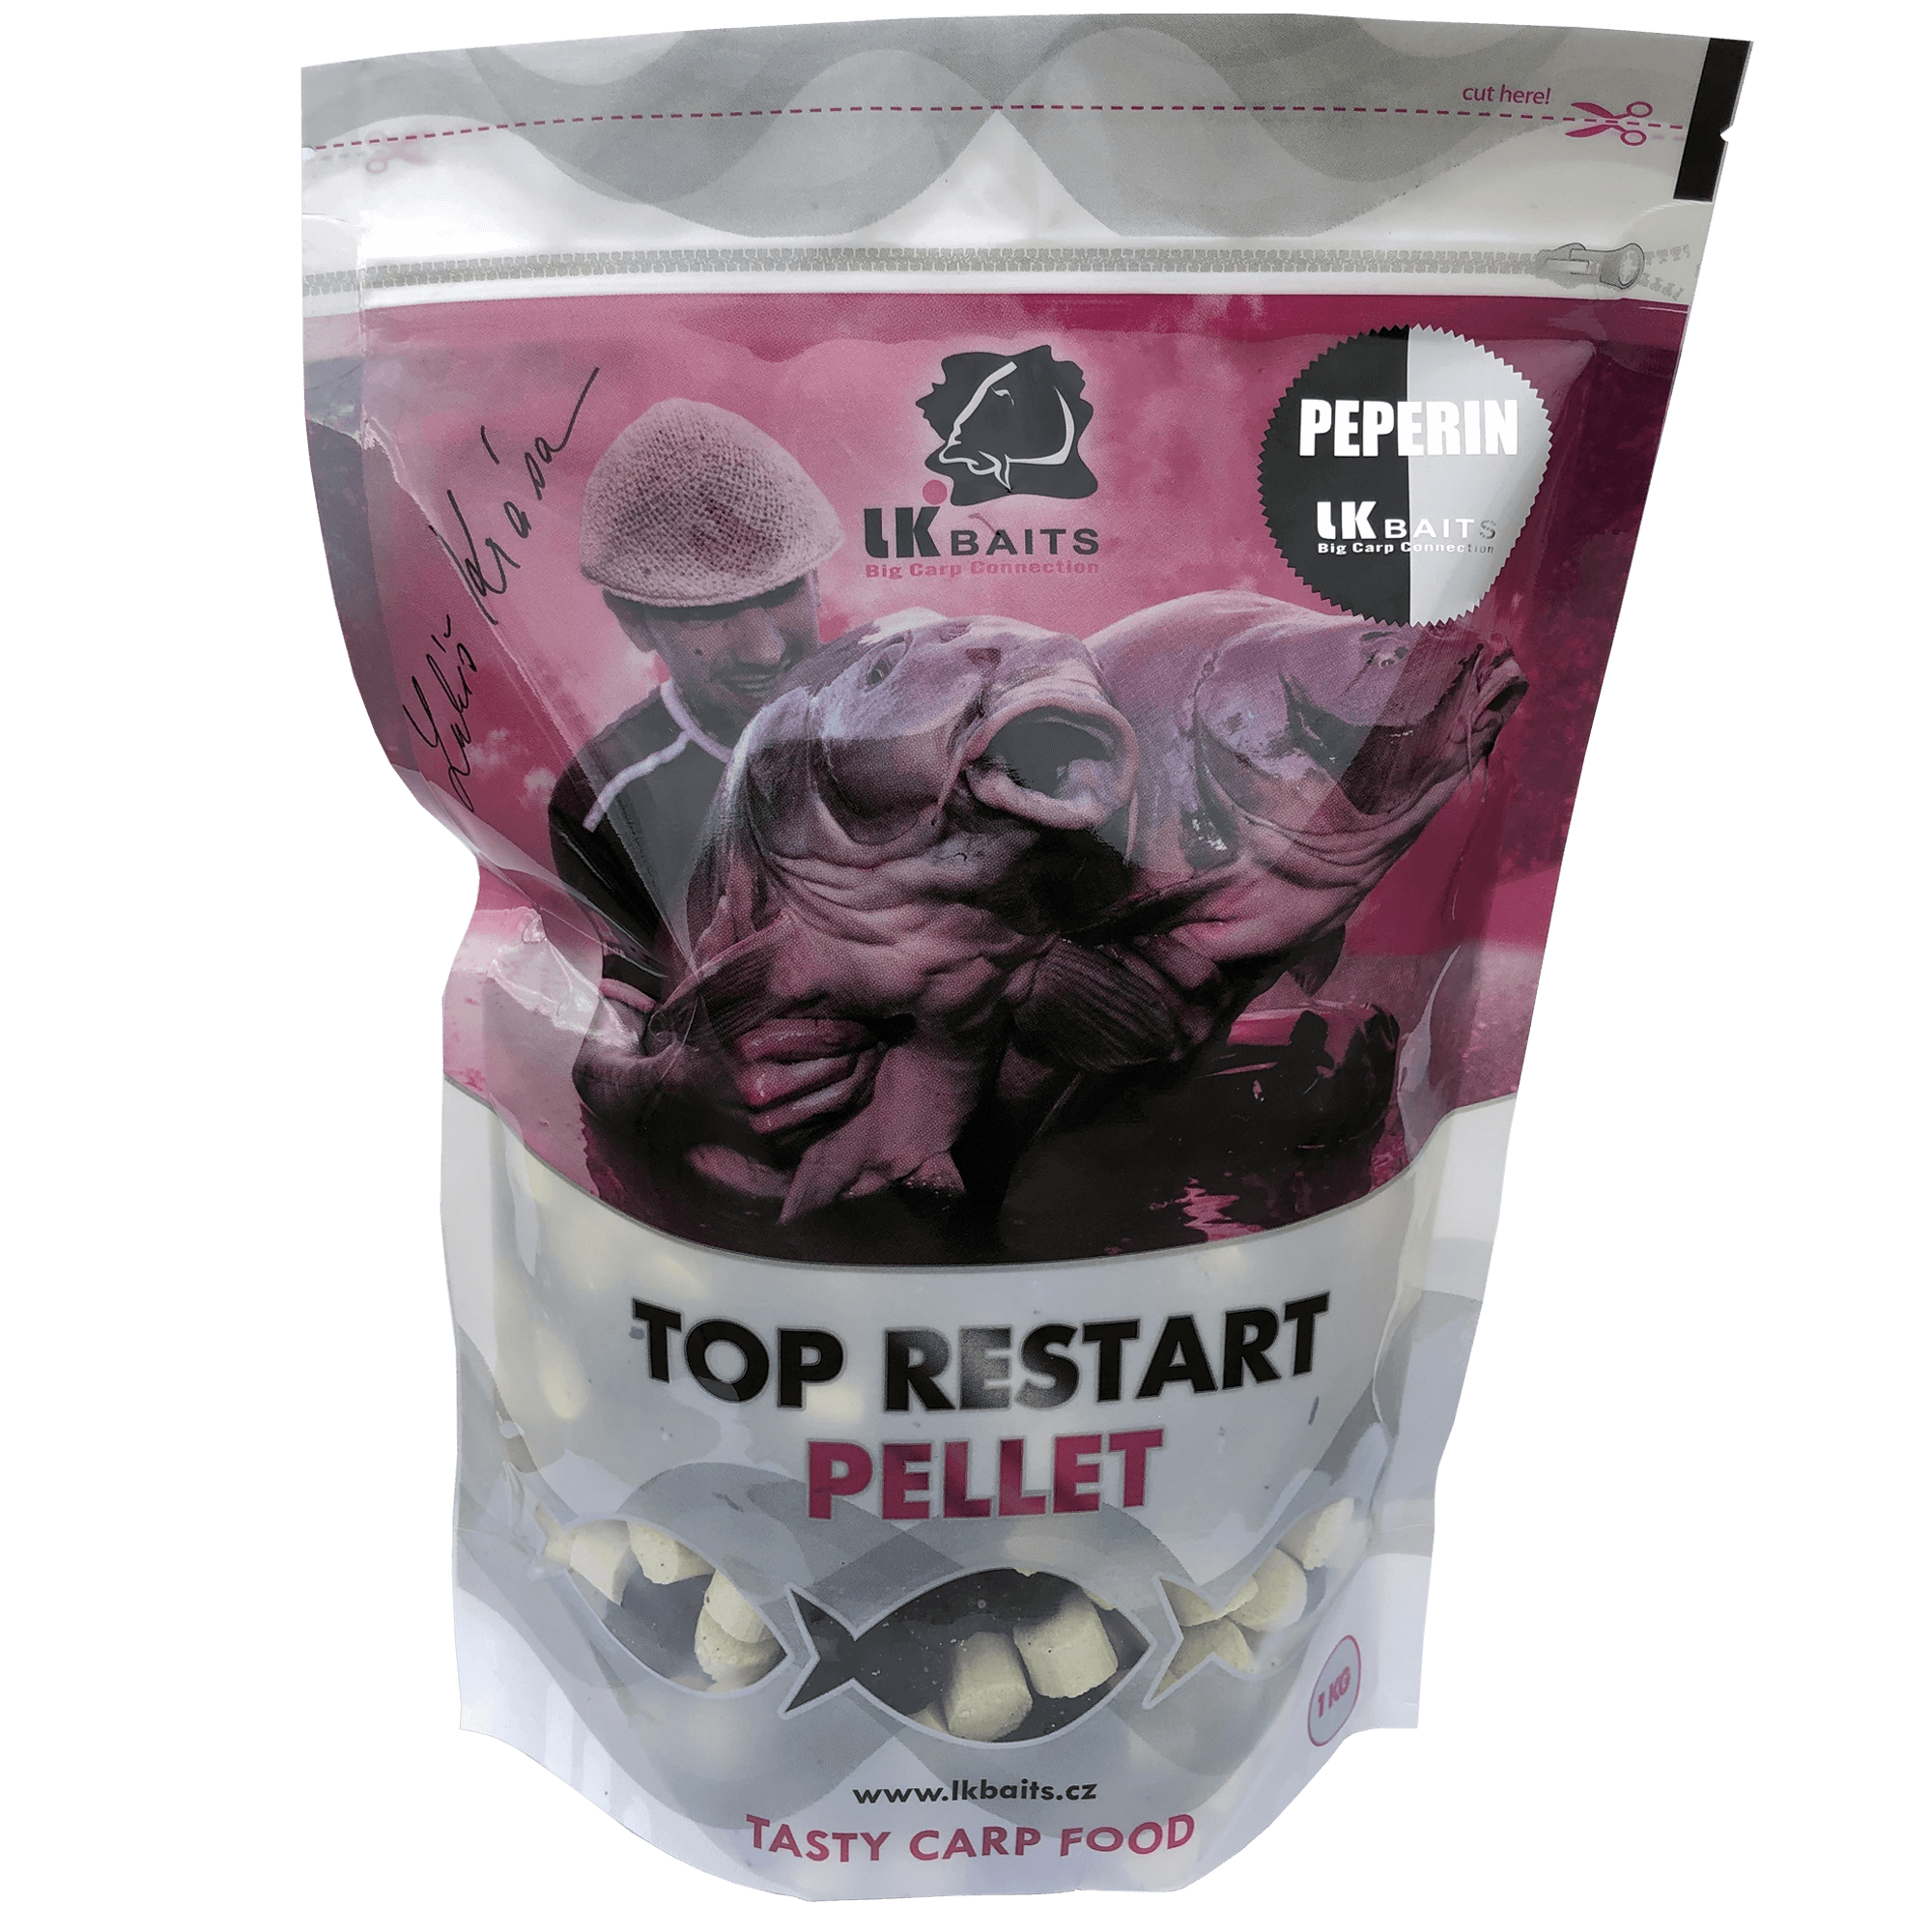 LK BAITS - Pelety Top Restart Pellets Peperin 1kg / 12-17mm